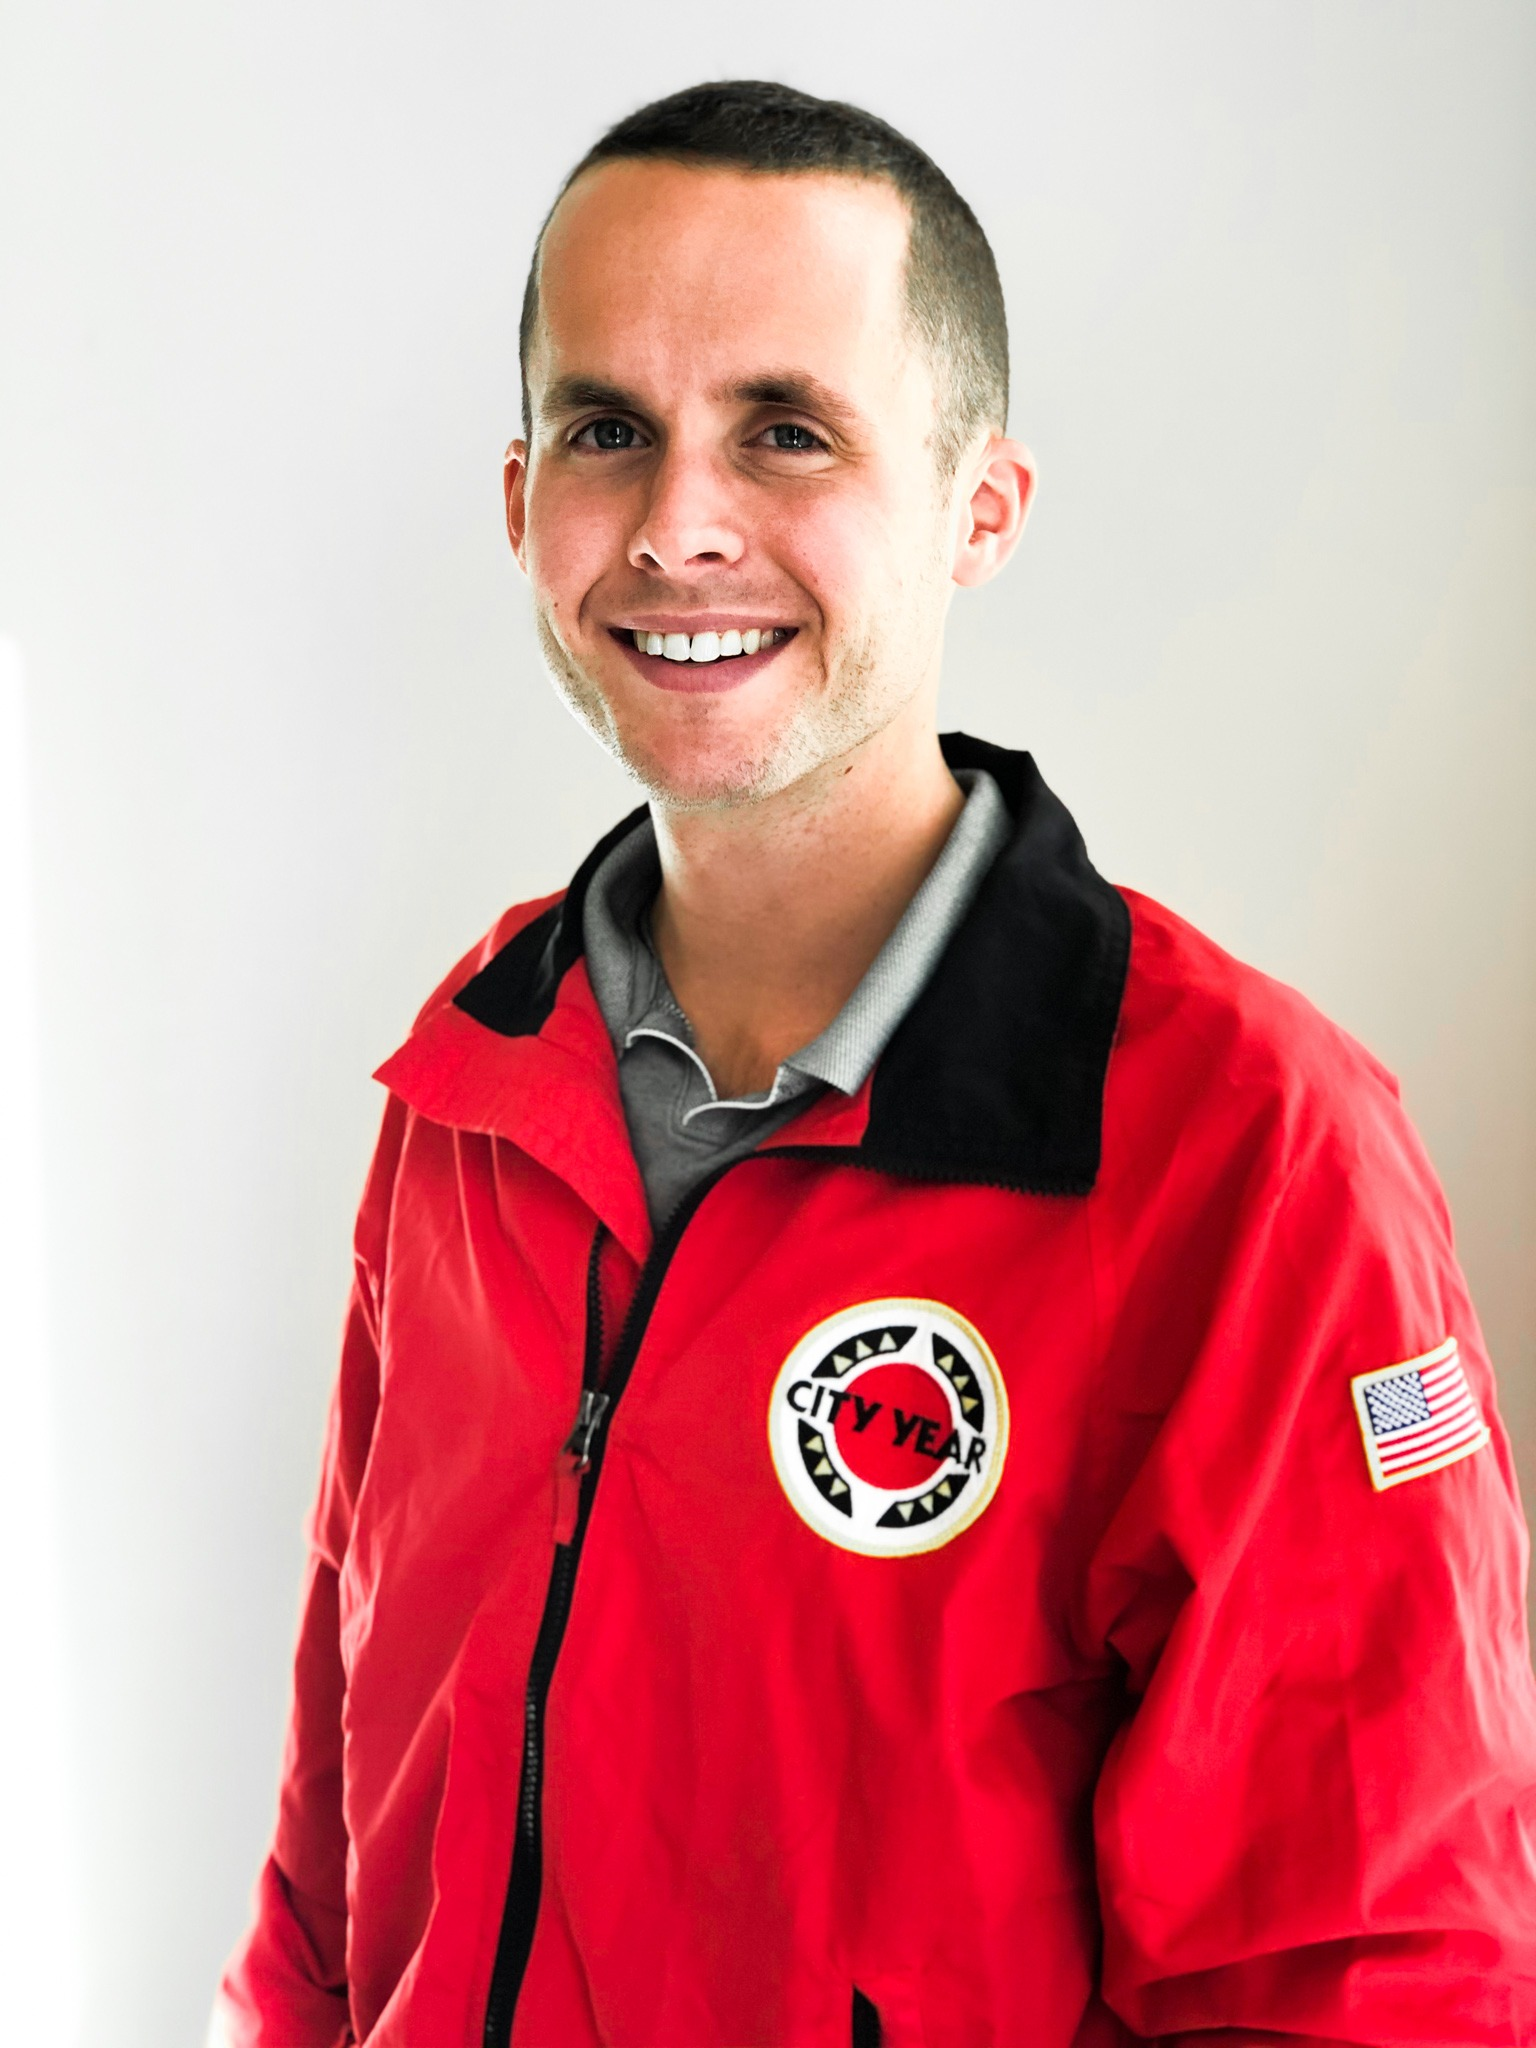 Richard Knight in a red CY jacket